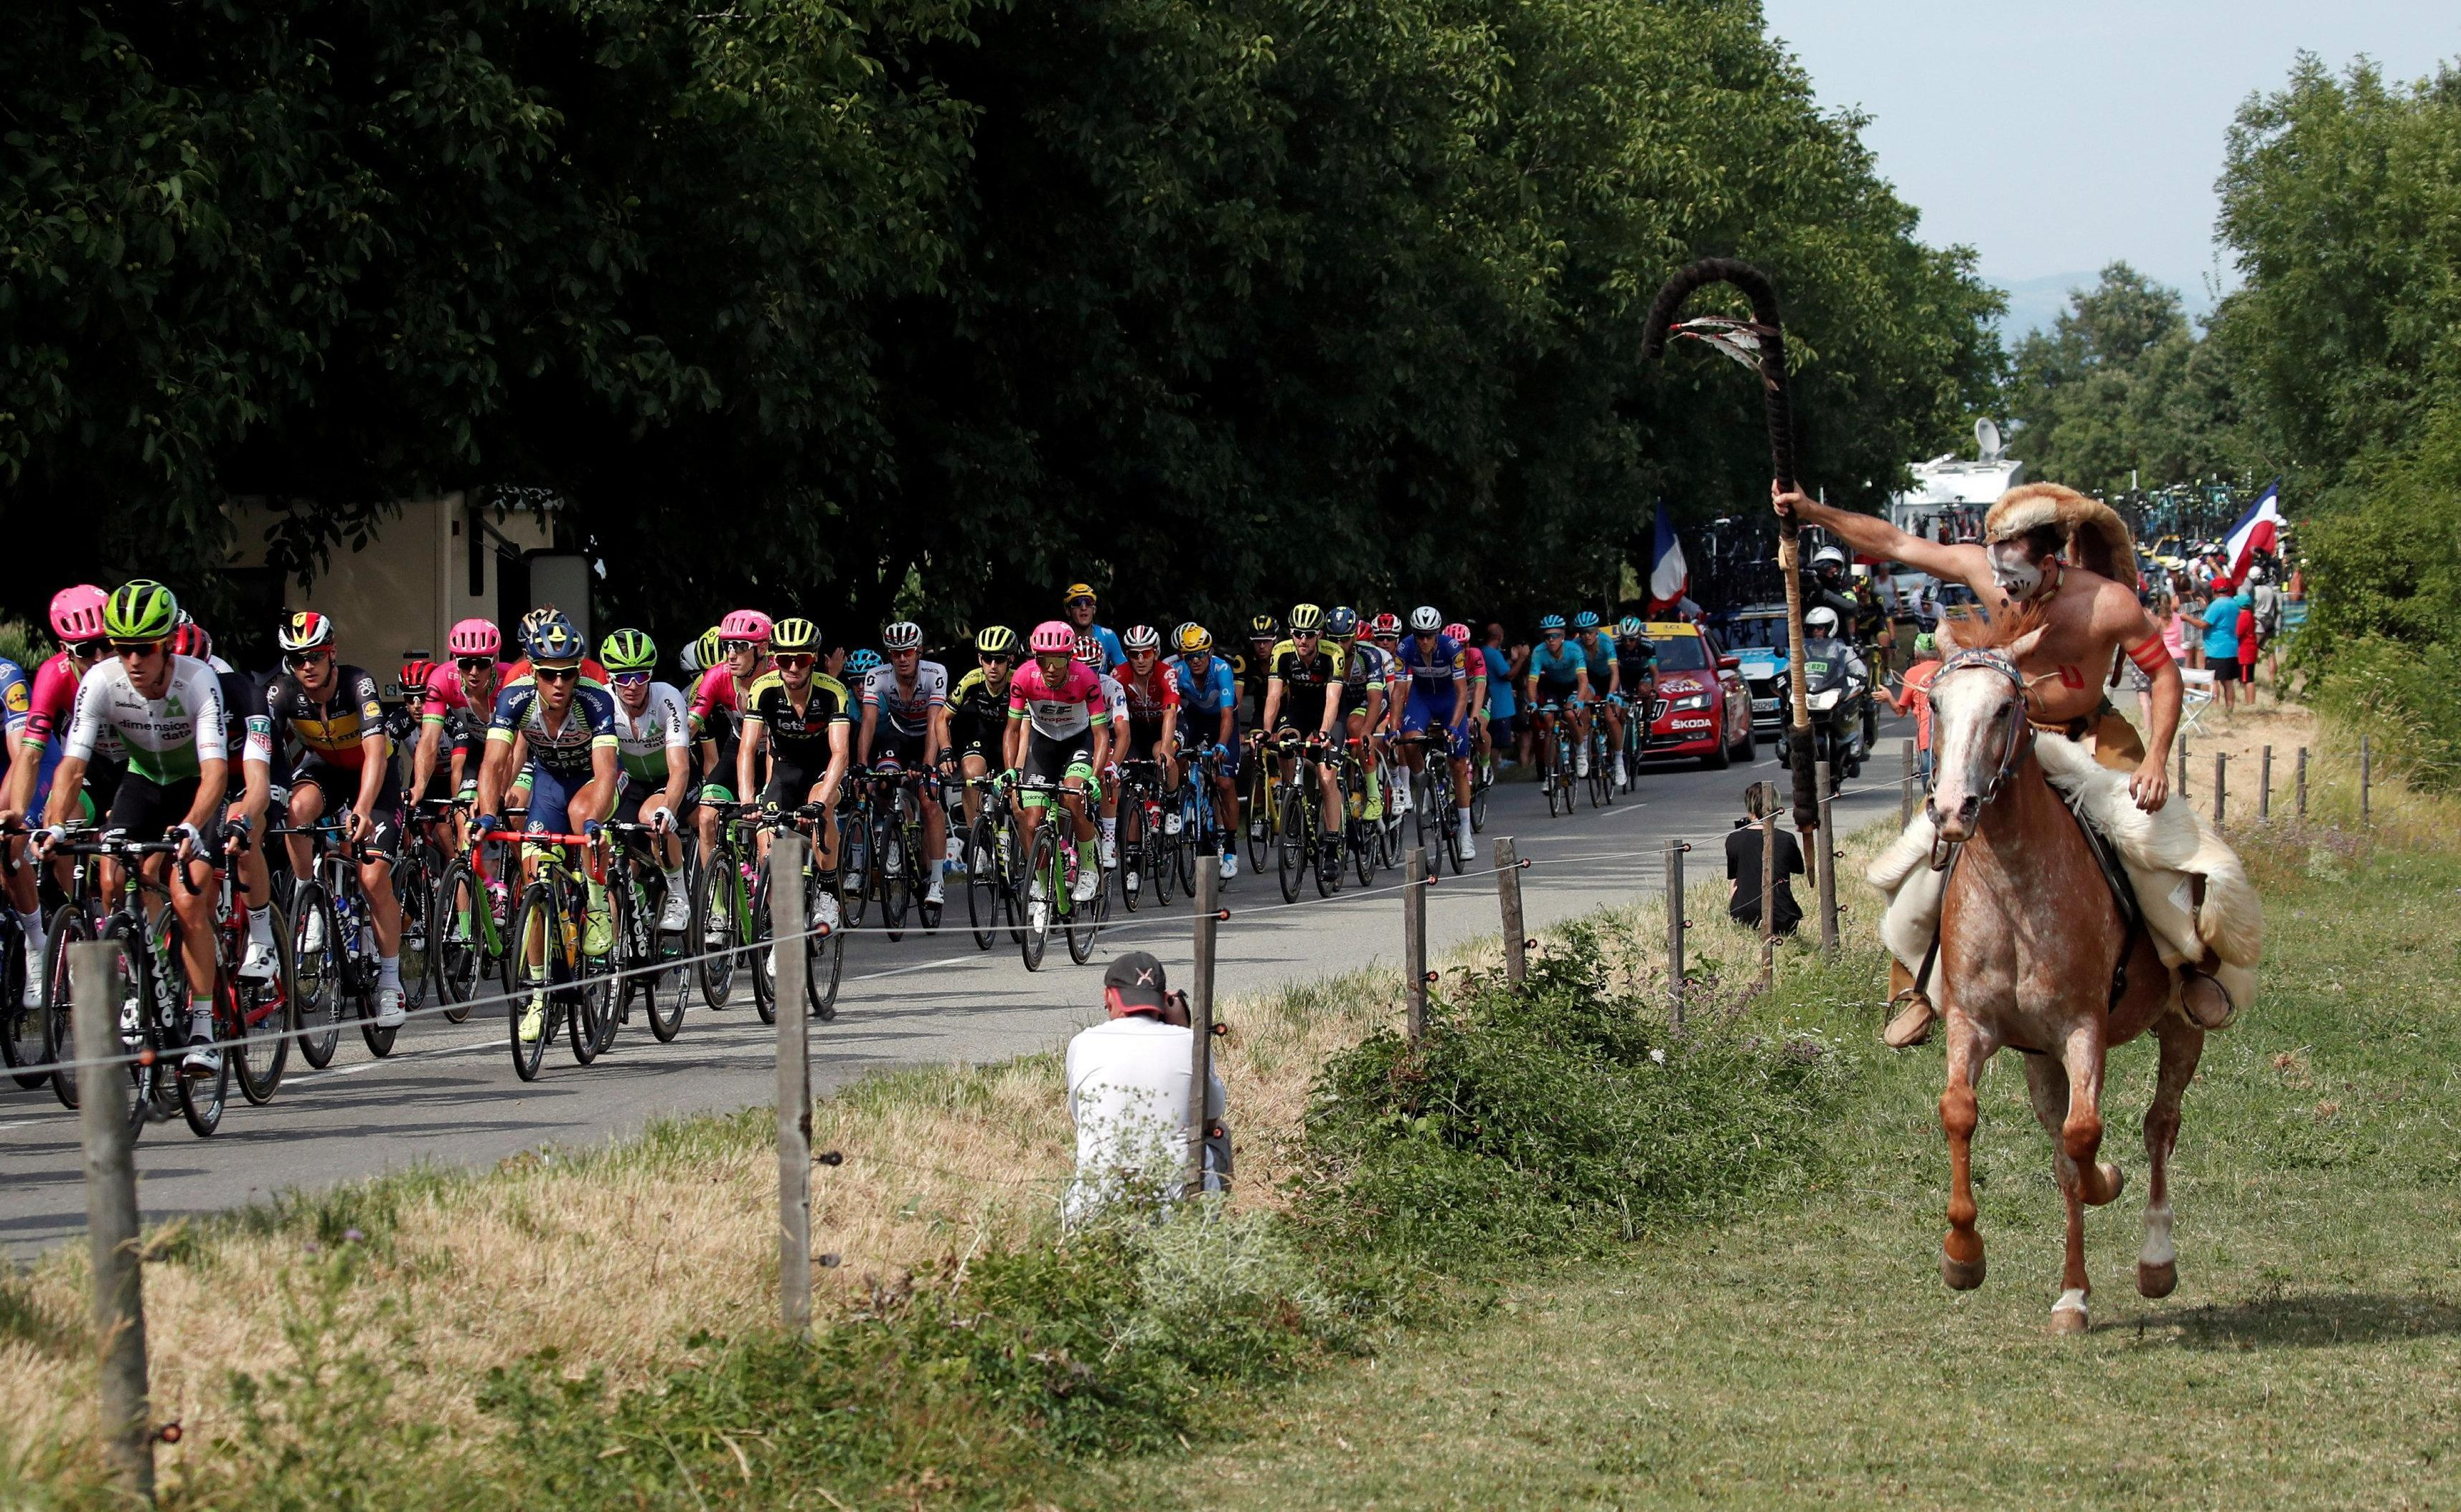 A fan on a horse cheers on the riders in a more light-hearted moment on the Tour